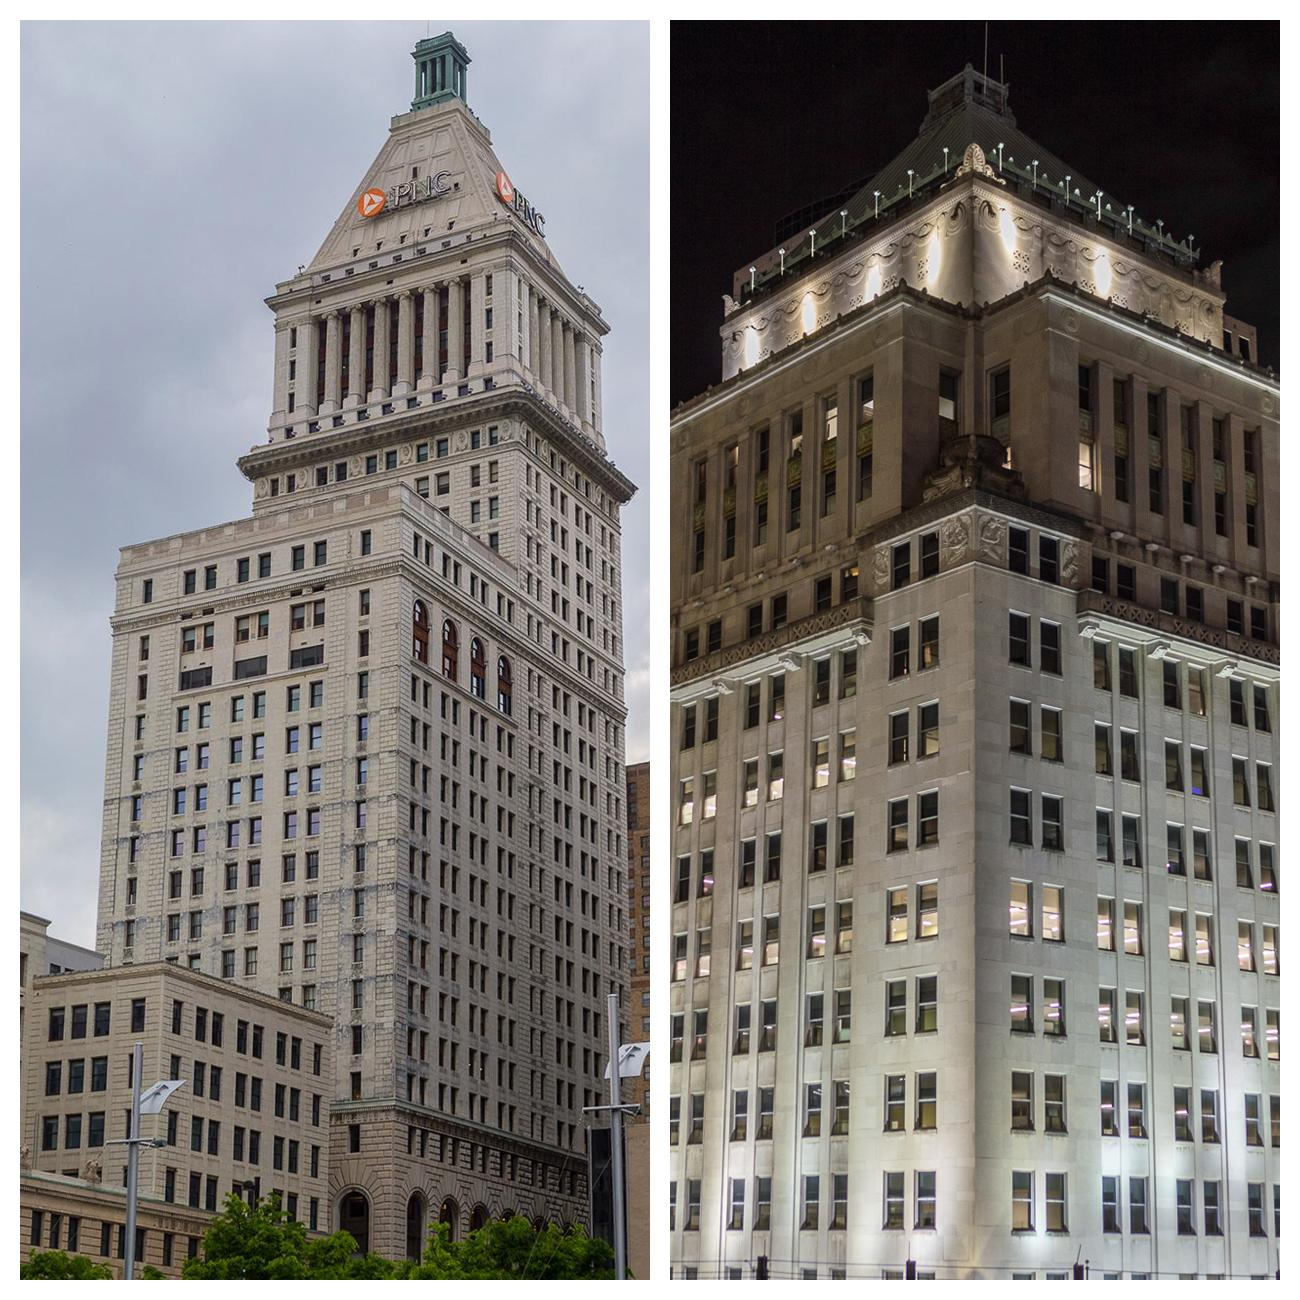 4th Street has old, iconic skyscrapers: 4th and Vine Tower and Duke Energy Building / Images: Phil Armstrong, Cincinnati Refined // Published: 4.23.18